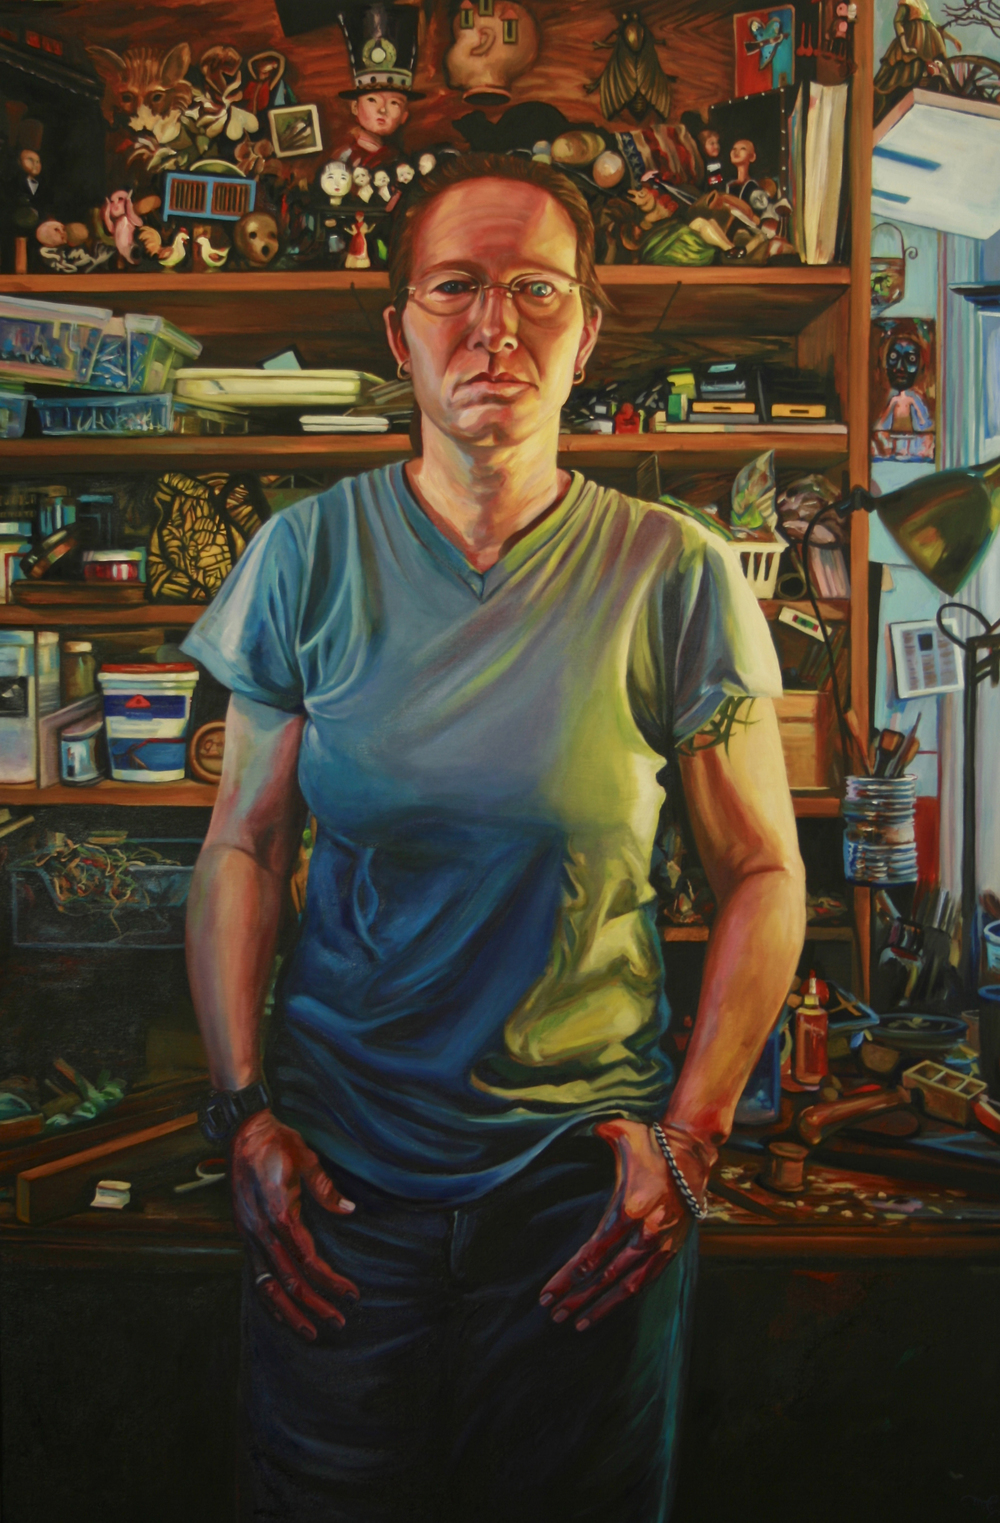 SECOND PLACE  - bugatha1 (2016) | From the series People in my Neighborhood | Marie Cameron | Oil on canvas | 24x36"